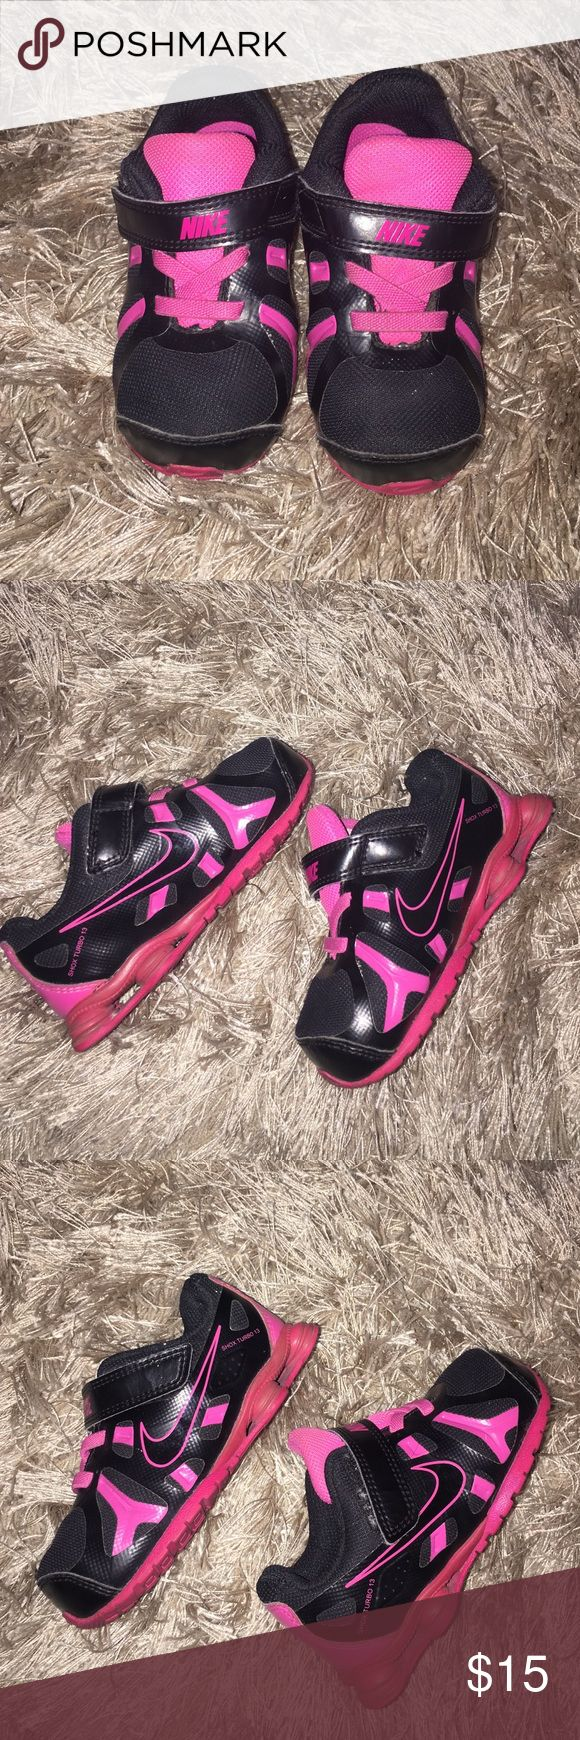 NIKE SHOX TURBO 13  BABY SNEAKERS SIZE 7.5 C AND THE C STANDS FOR CRIB SIZE BABIES.  SUPER CUTE GYM SHOES AND IN EXCELLENT CONDITION! Nike Shoes Sneakers